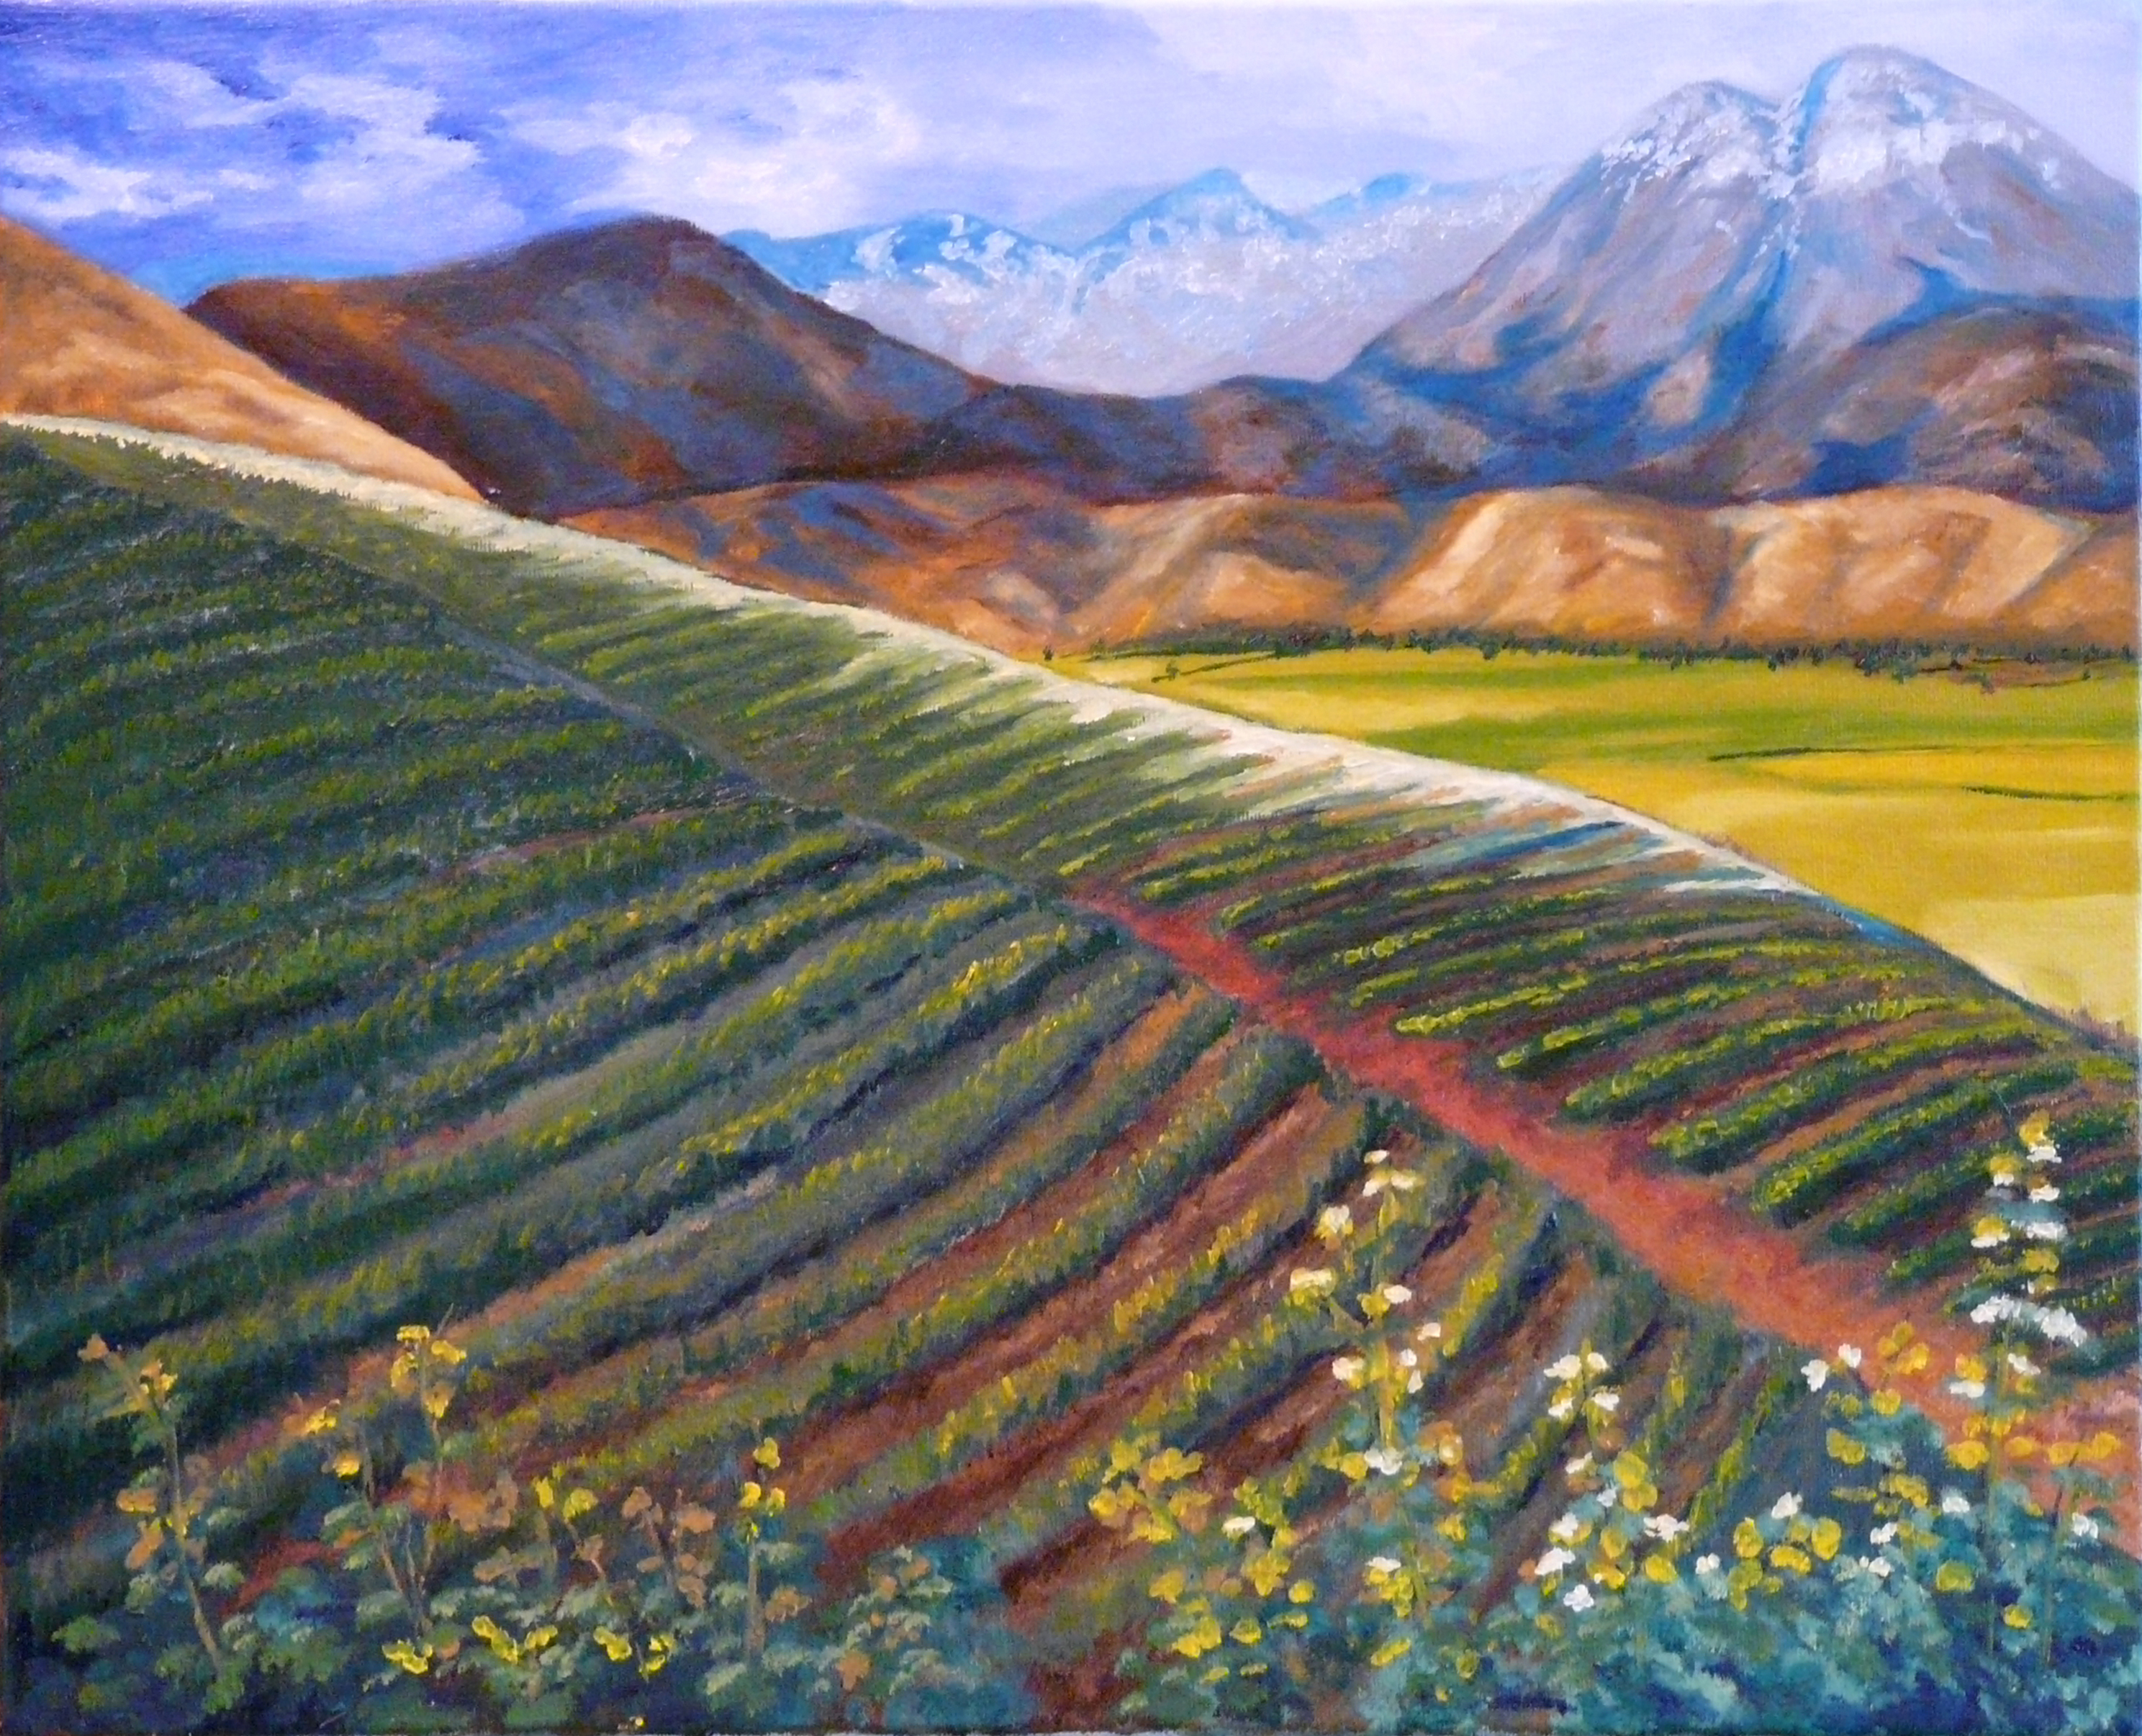 """Original Oil Painting by Vic Ritchey, """"Mountain Farmland, The vineyard"""""""